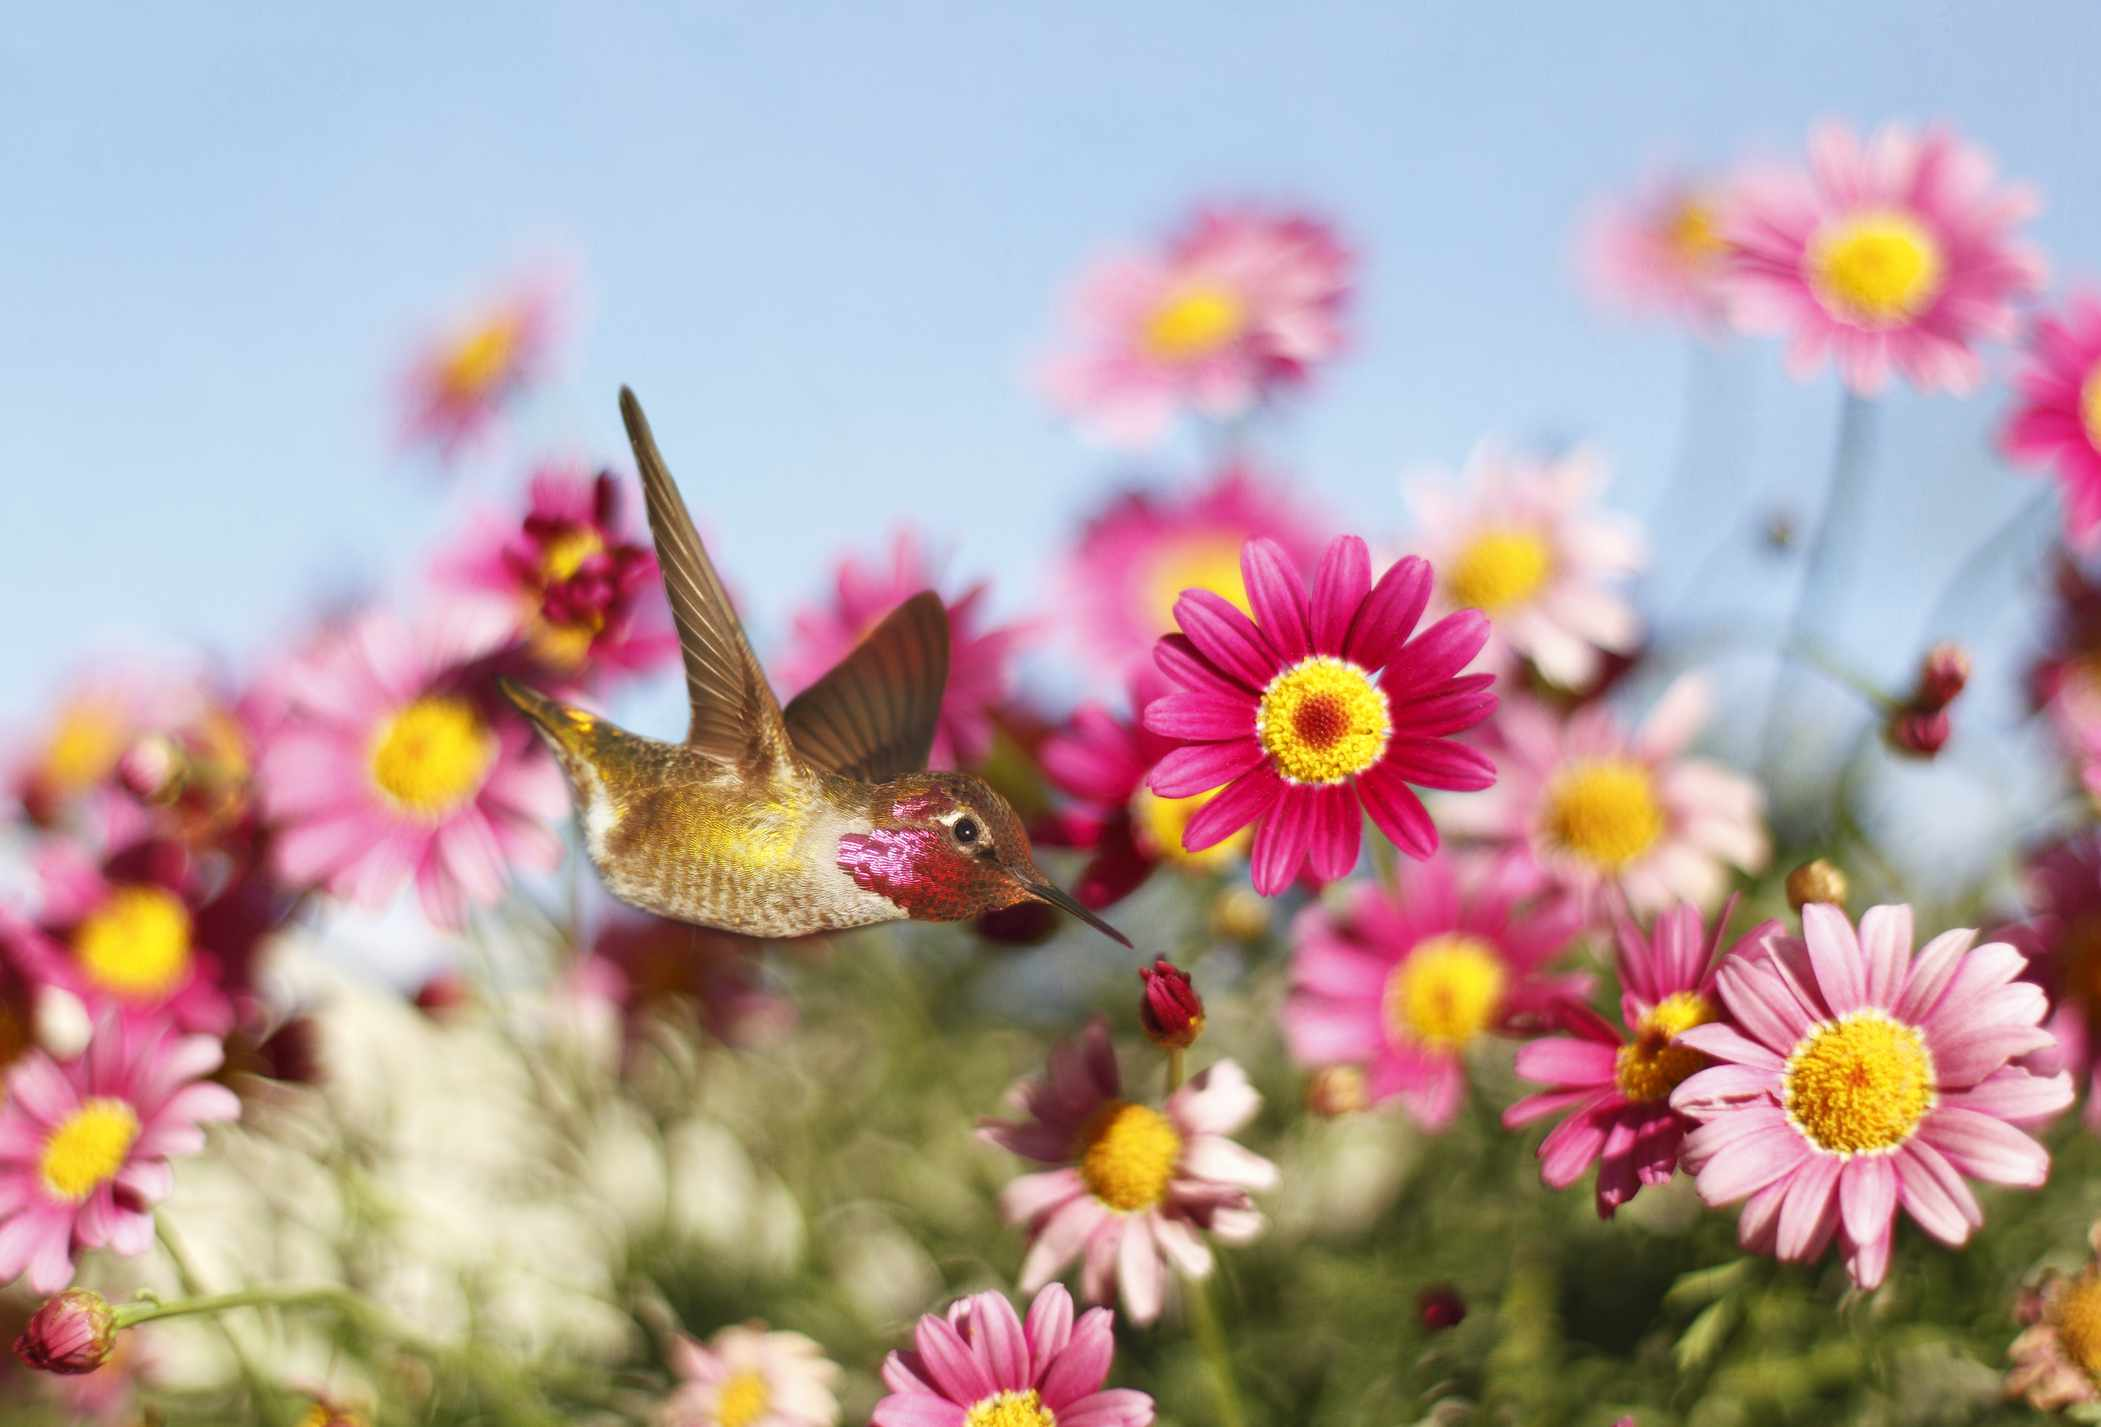 A hummingbird flying in front of pink flowers.